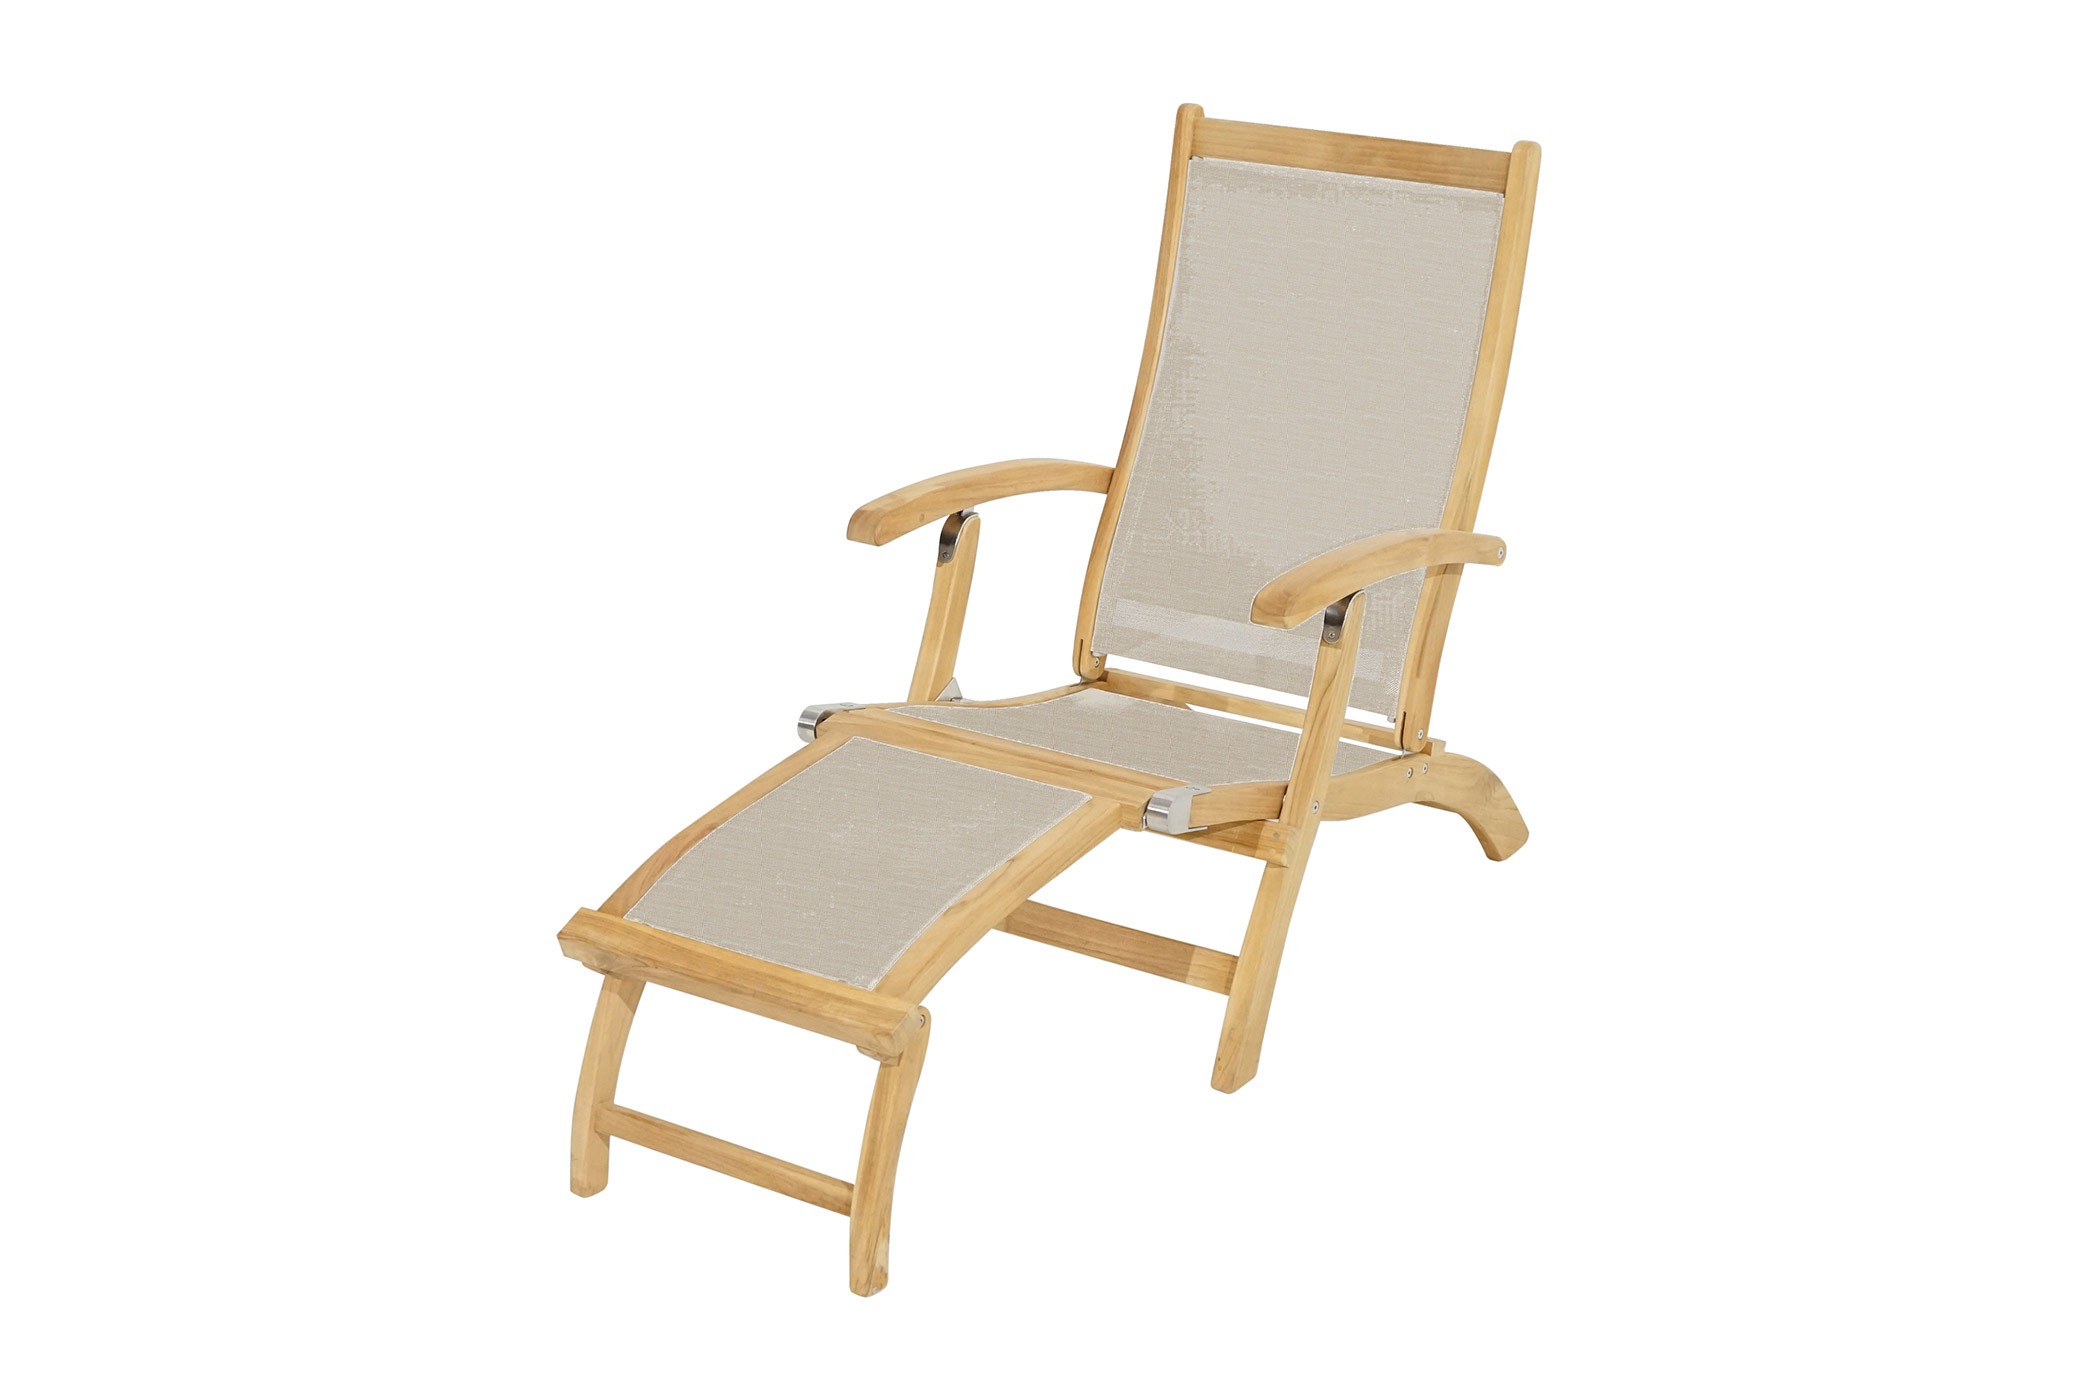 deckchair richmond teak textilene deckchairs. Black Bedroom Furniture Sets. Home Design Ideas